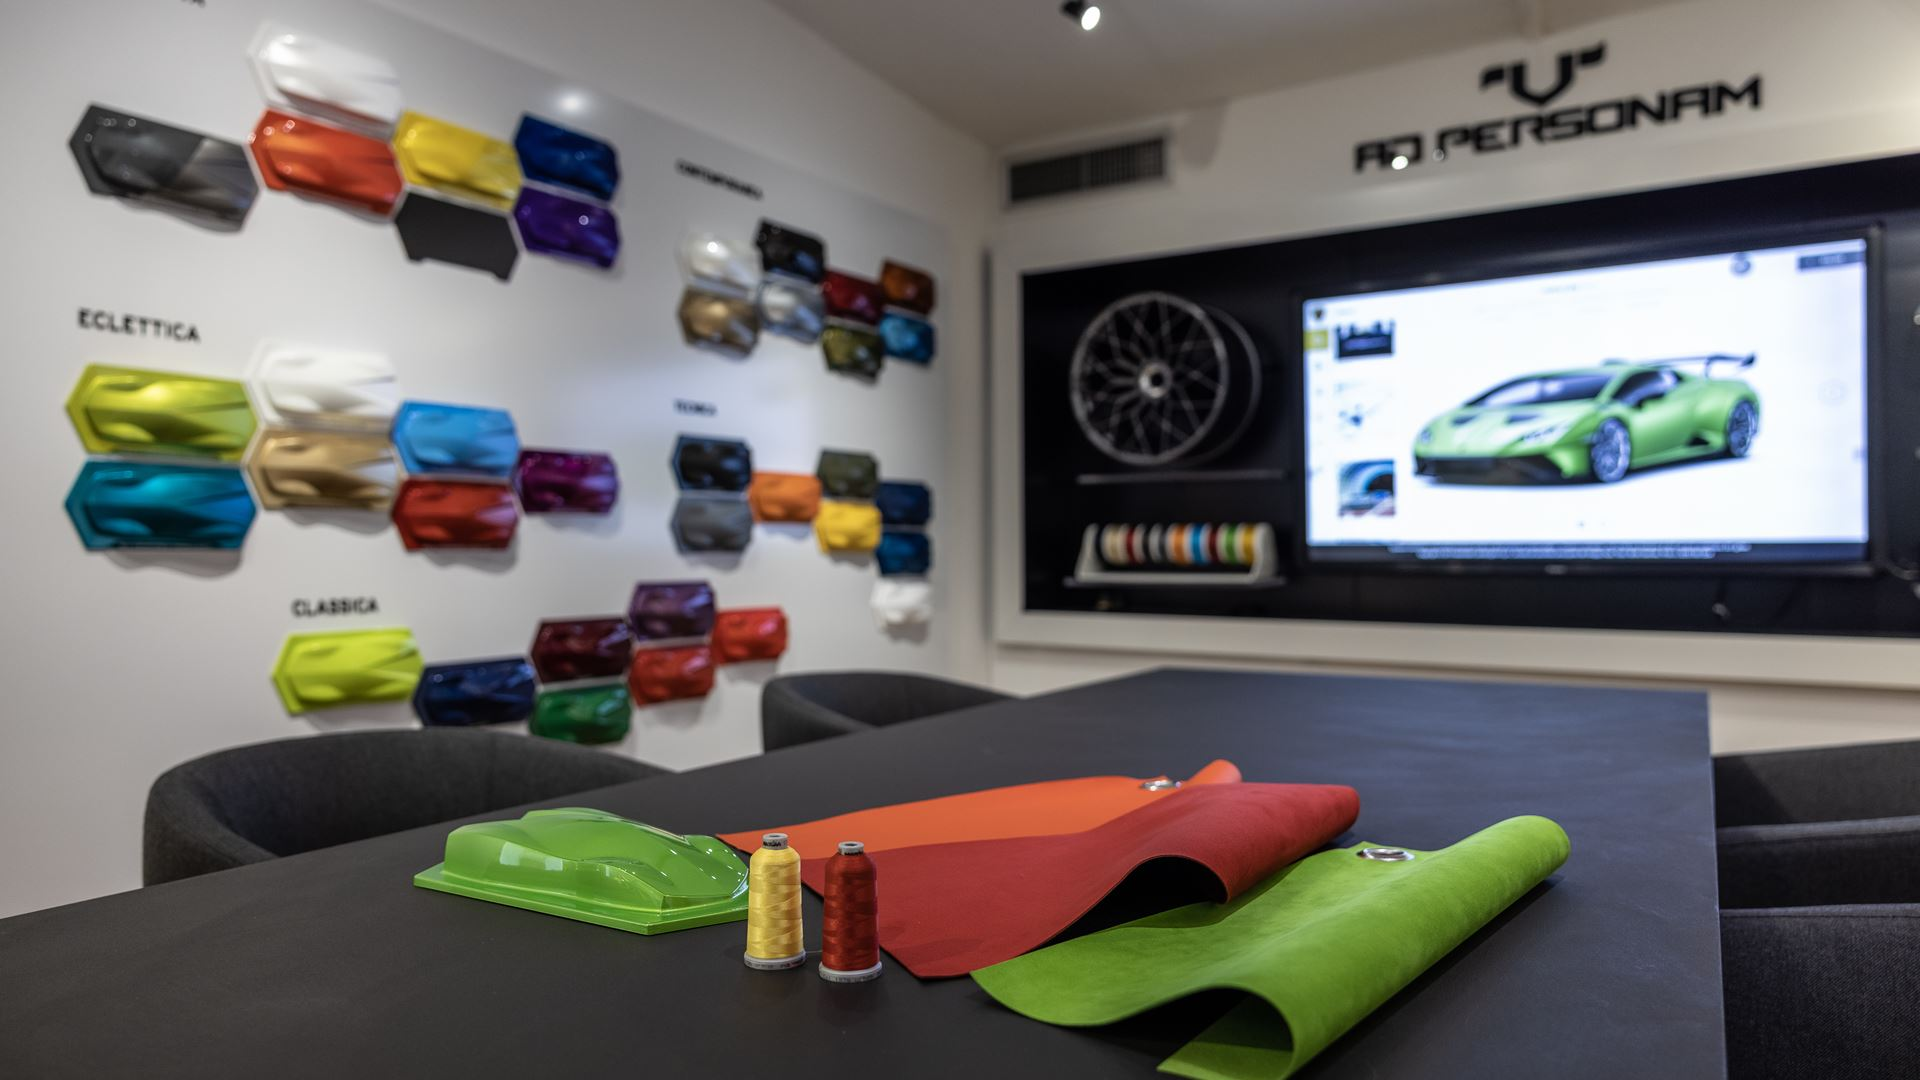 Lamborghini Lounge in Porto Cervo: exclusivity, lifestyle and product innovations, until September - Image 1